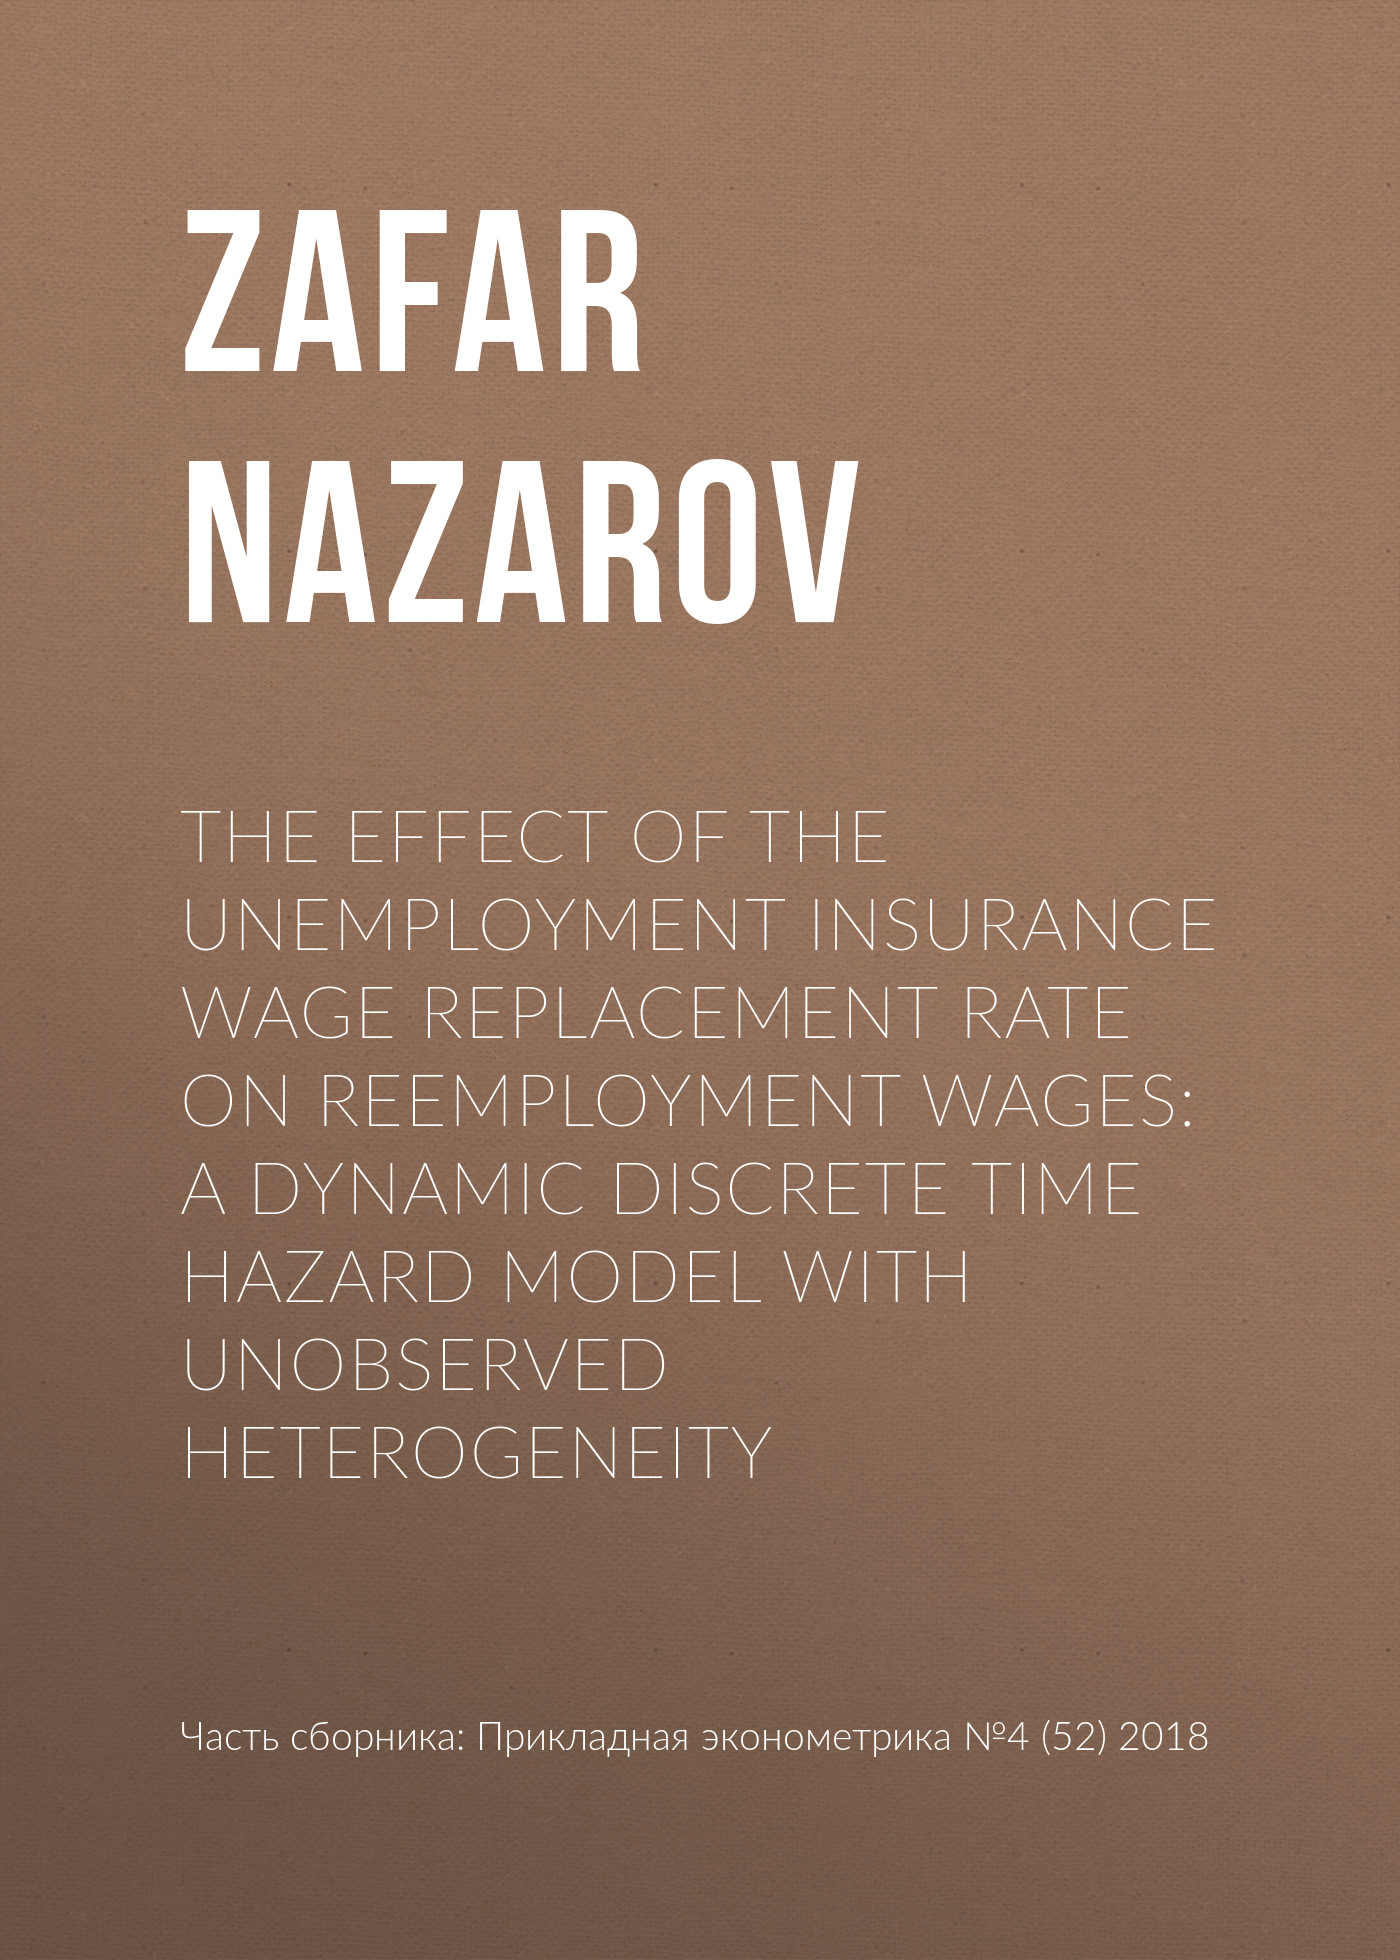 The effect of the unemployment insurance wage replacement rate on reemployment wages: A dynamic discrete time hazard model with unobserved heterogeneity